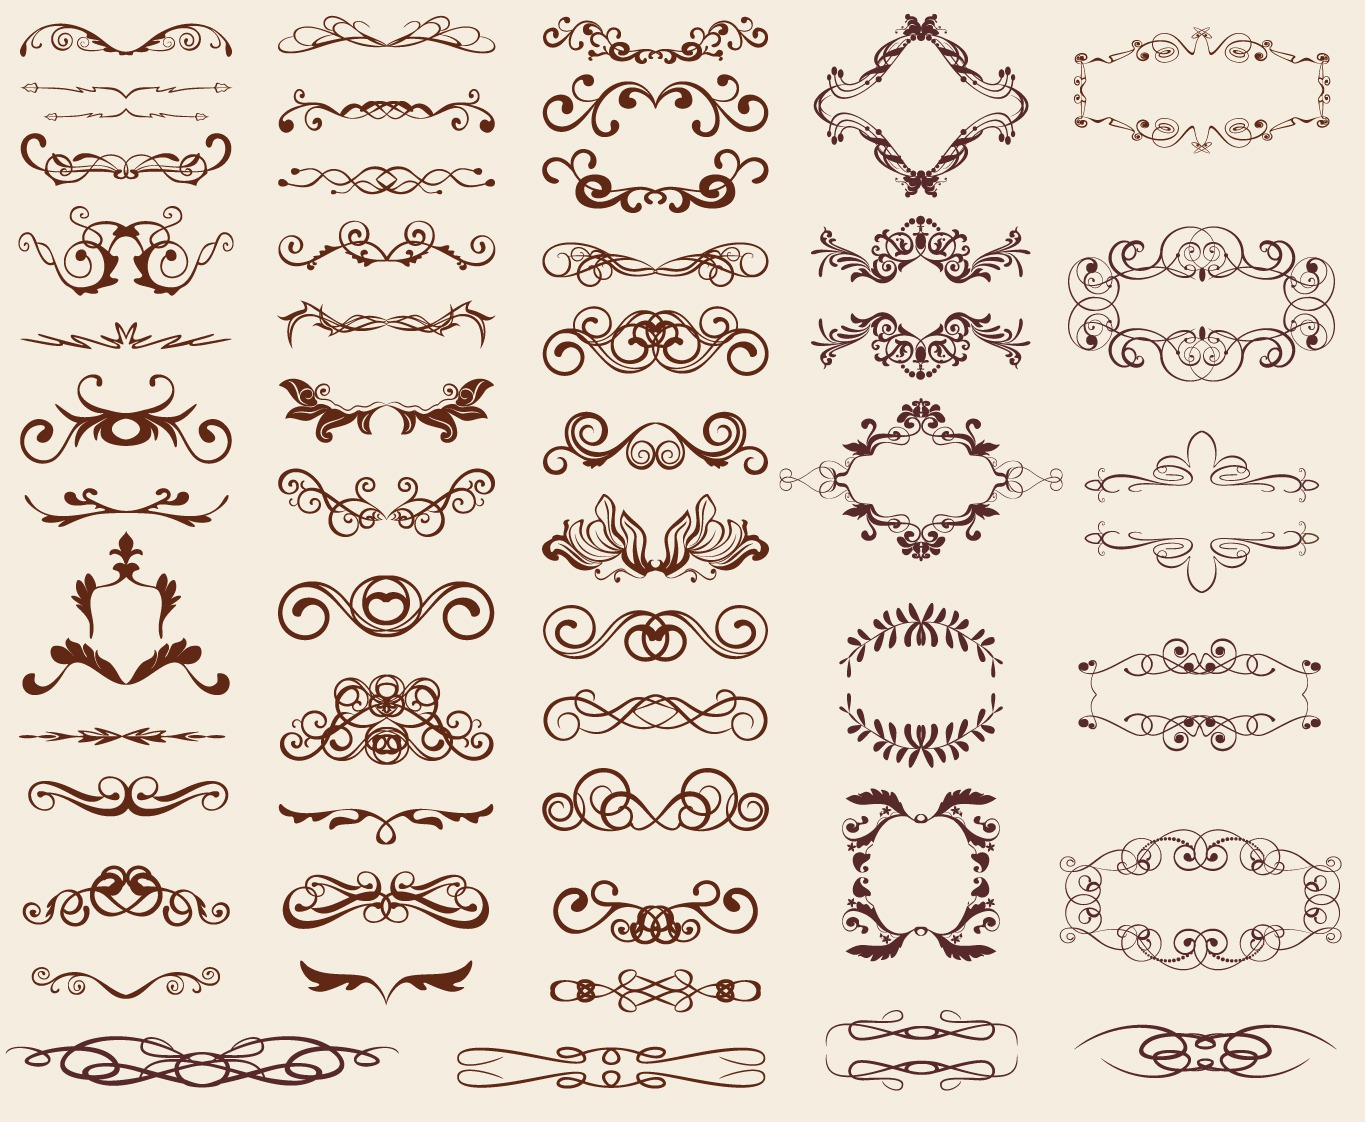 18 Free Design Elements Images